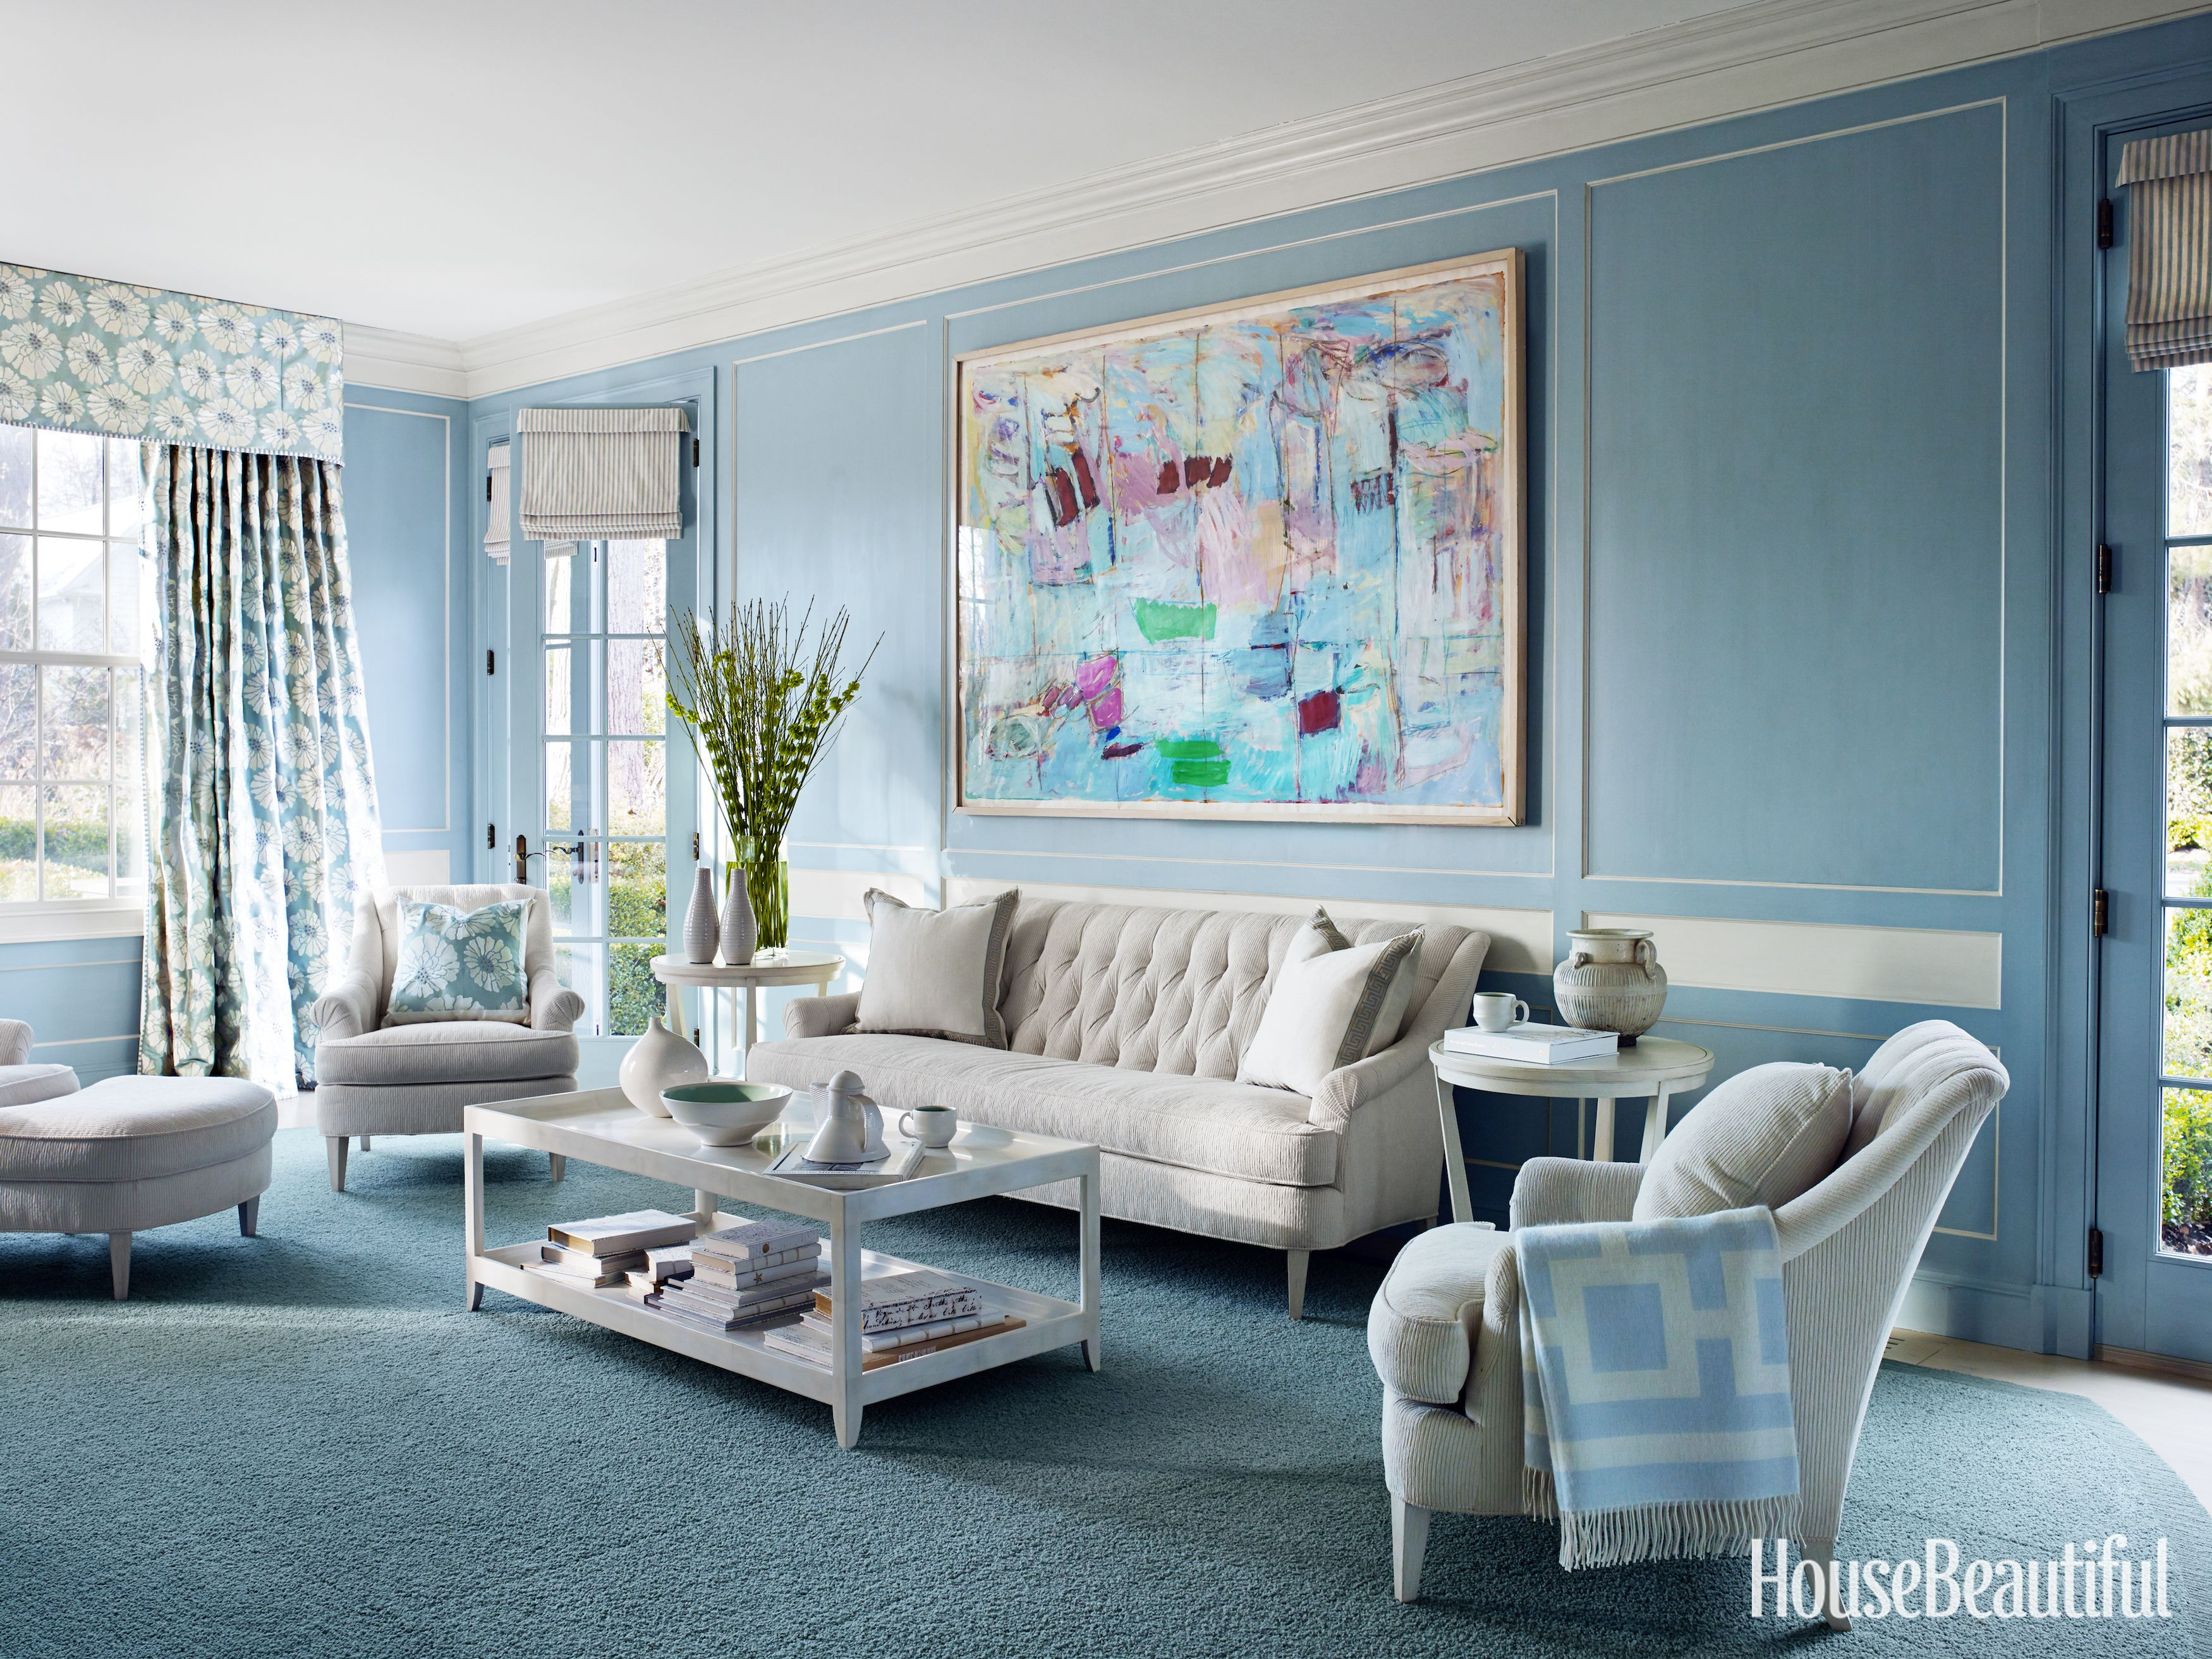 How to Decorate With Blue - Using Blue in Every Room of the House